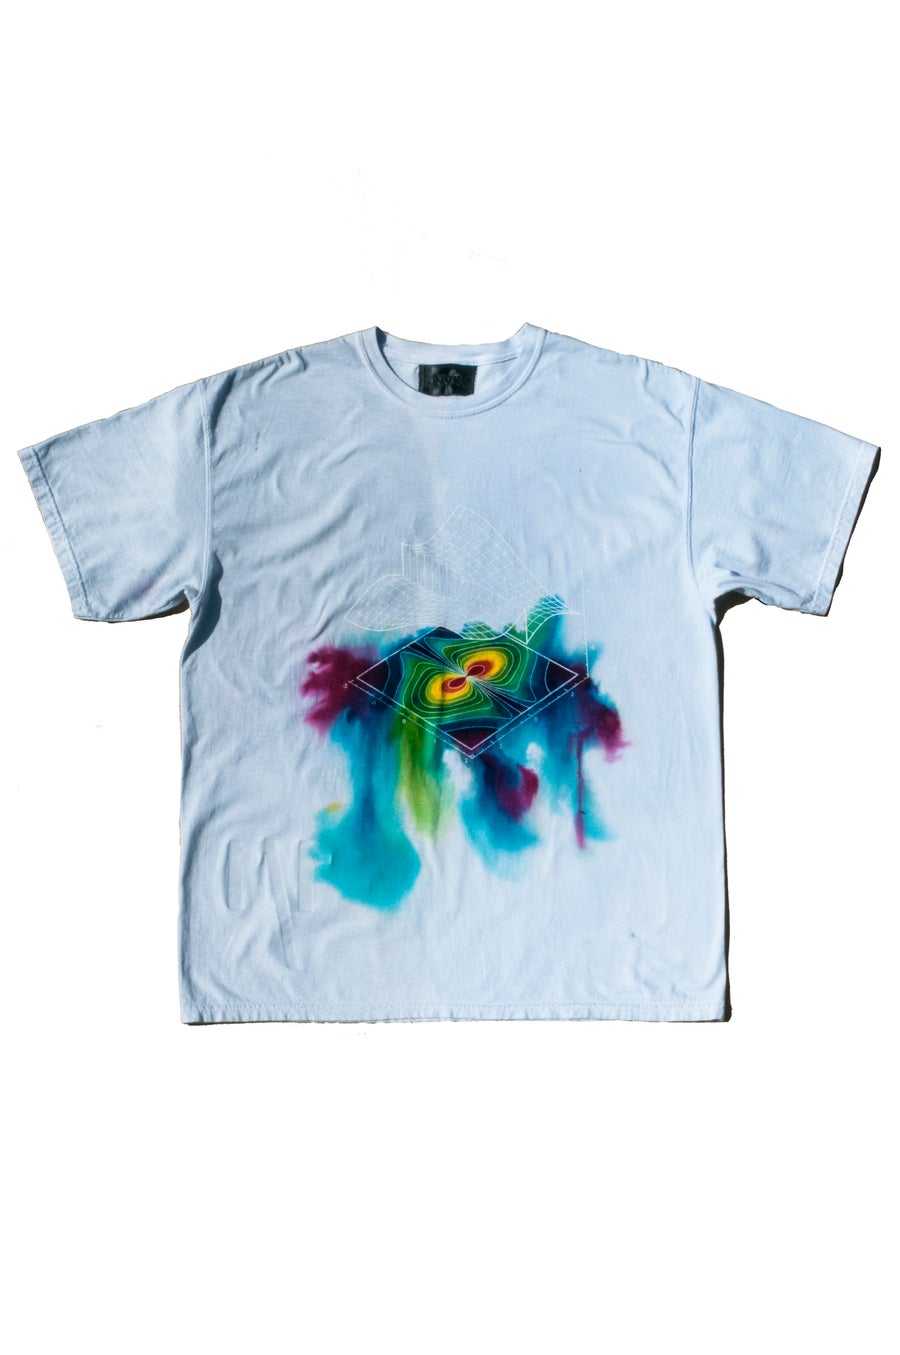 """Image of """"Pre-Frontal Anomaly"""" T-Shirt (1/1)"""